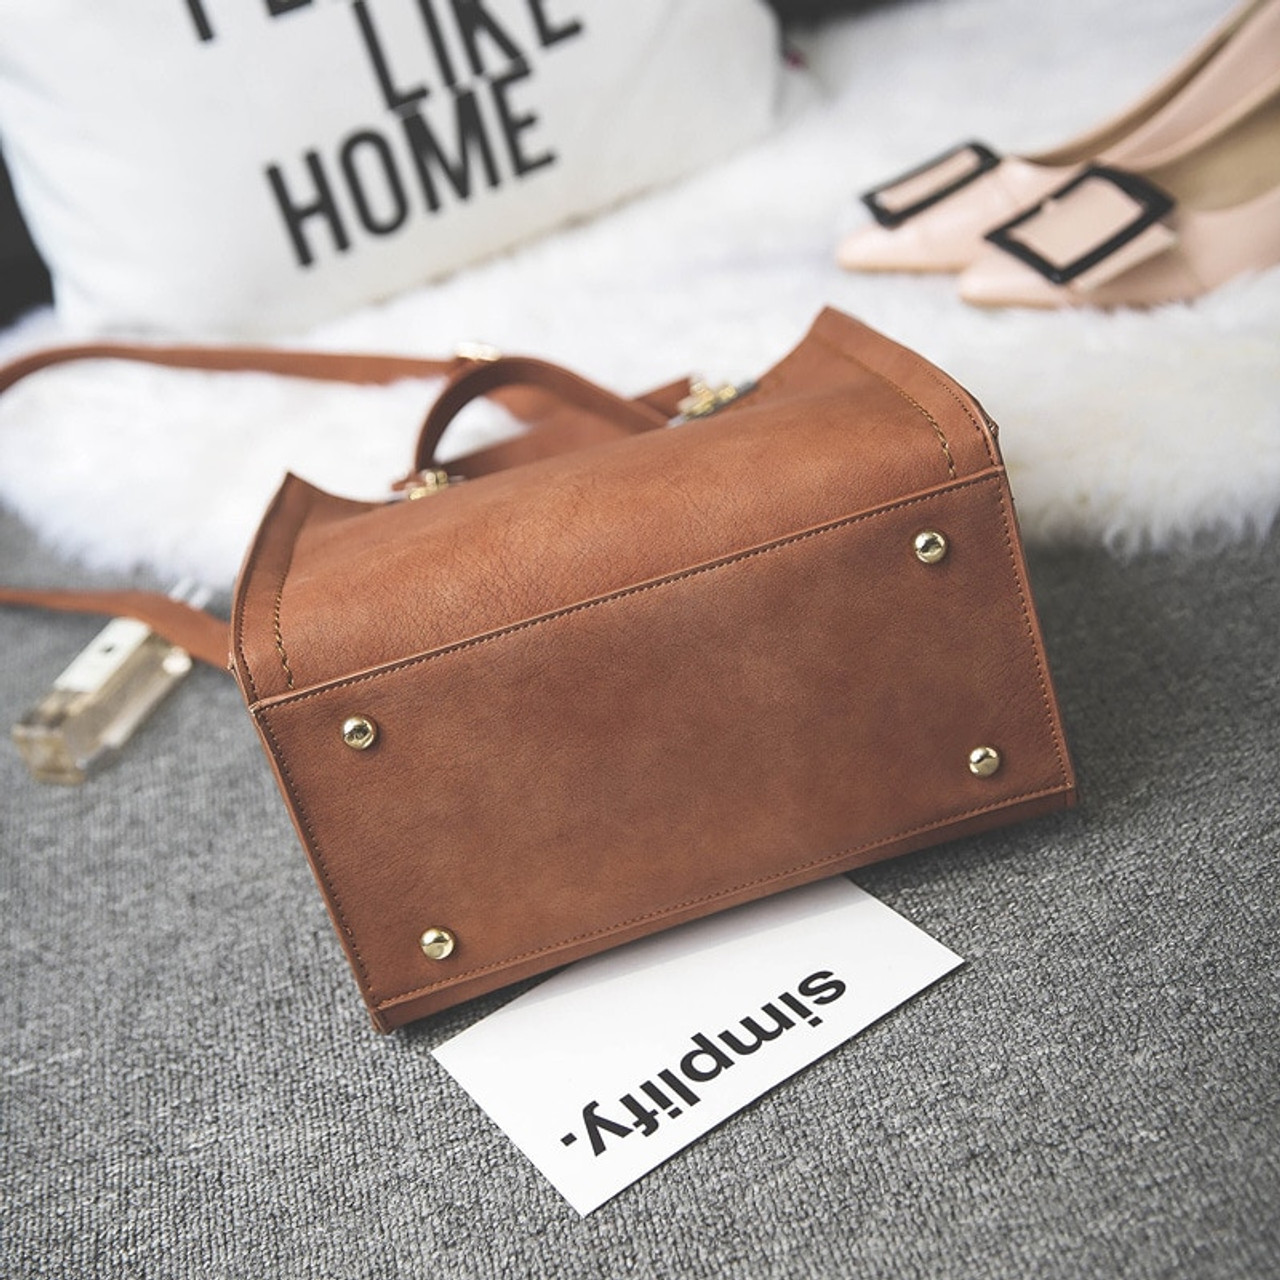 8ff5117adf81 ... NEW HOT SALE handbag women casual tote bag female large shoulder  messenger bags high quality Suede ...